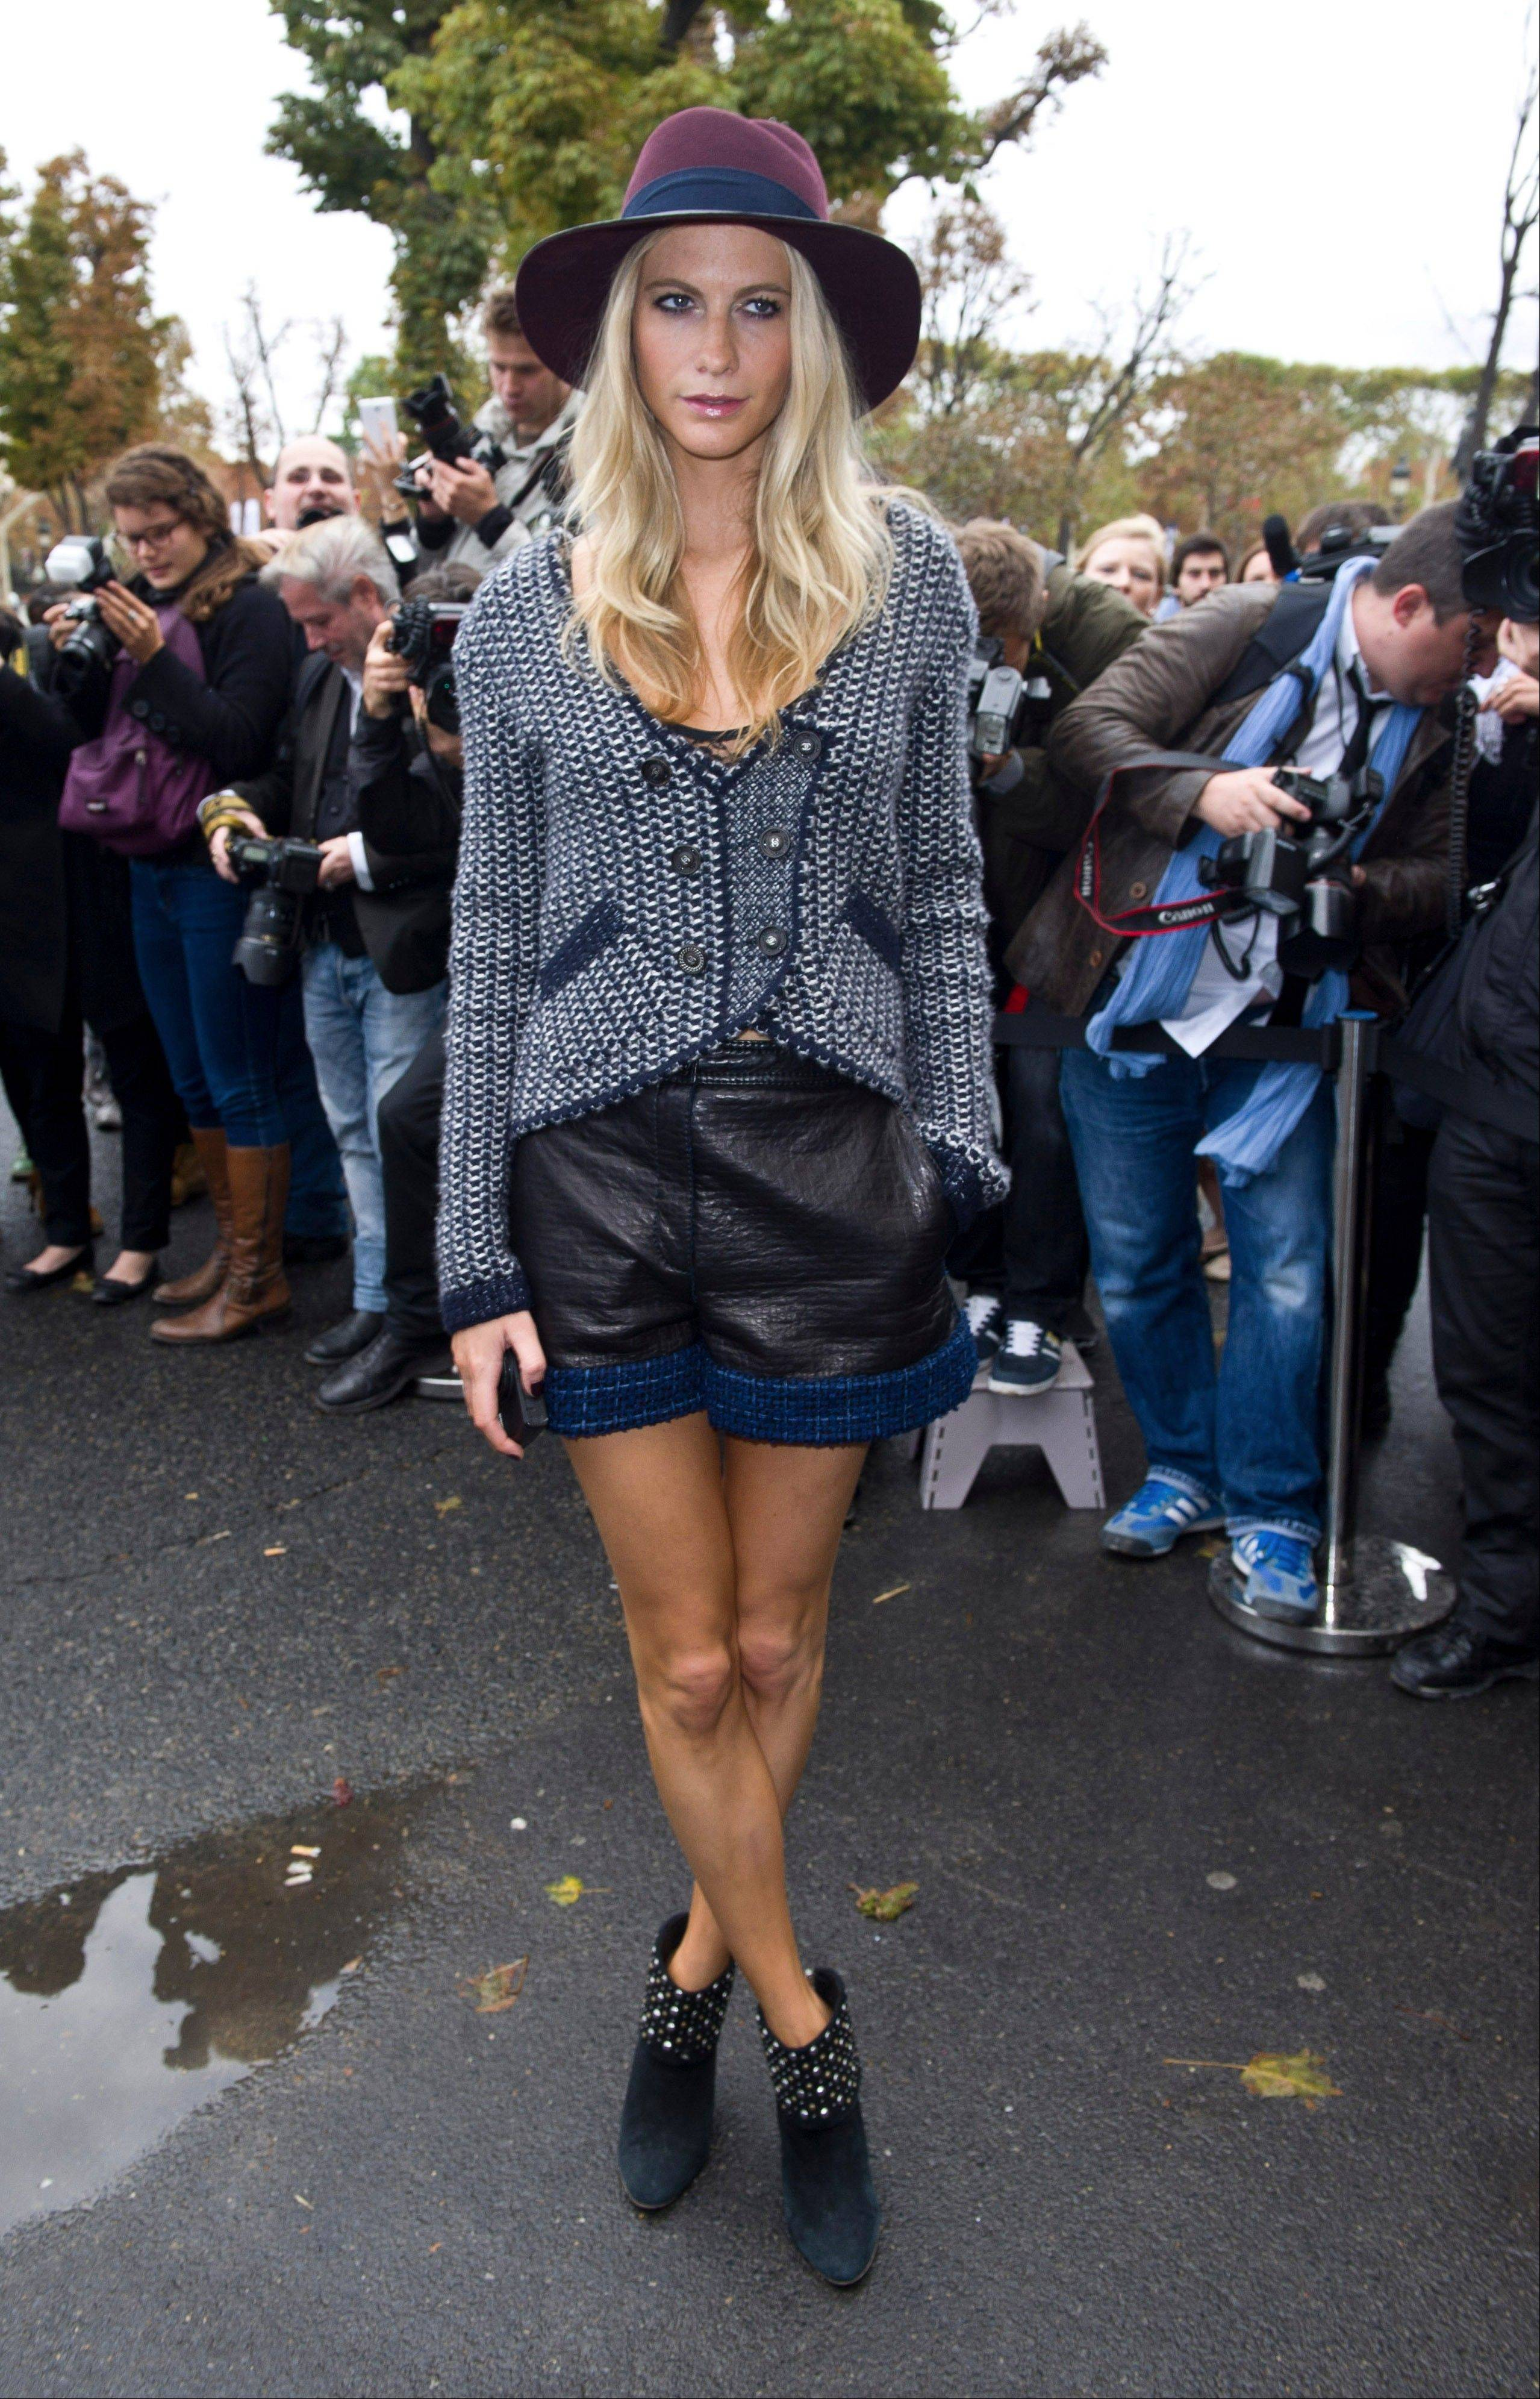 Associated Press British model and socialite Poppy Delevingne arrives Tuesday for the presentation of Chanel's ready to wear Spring-Summer 2013 collection.